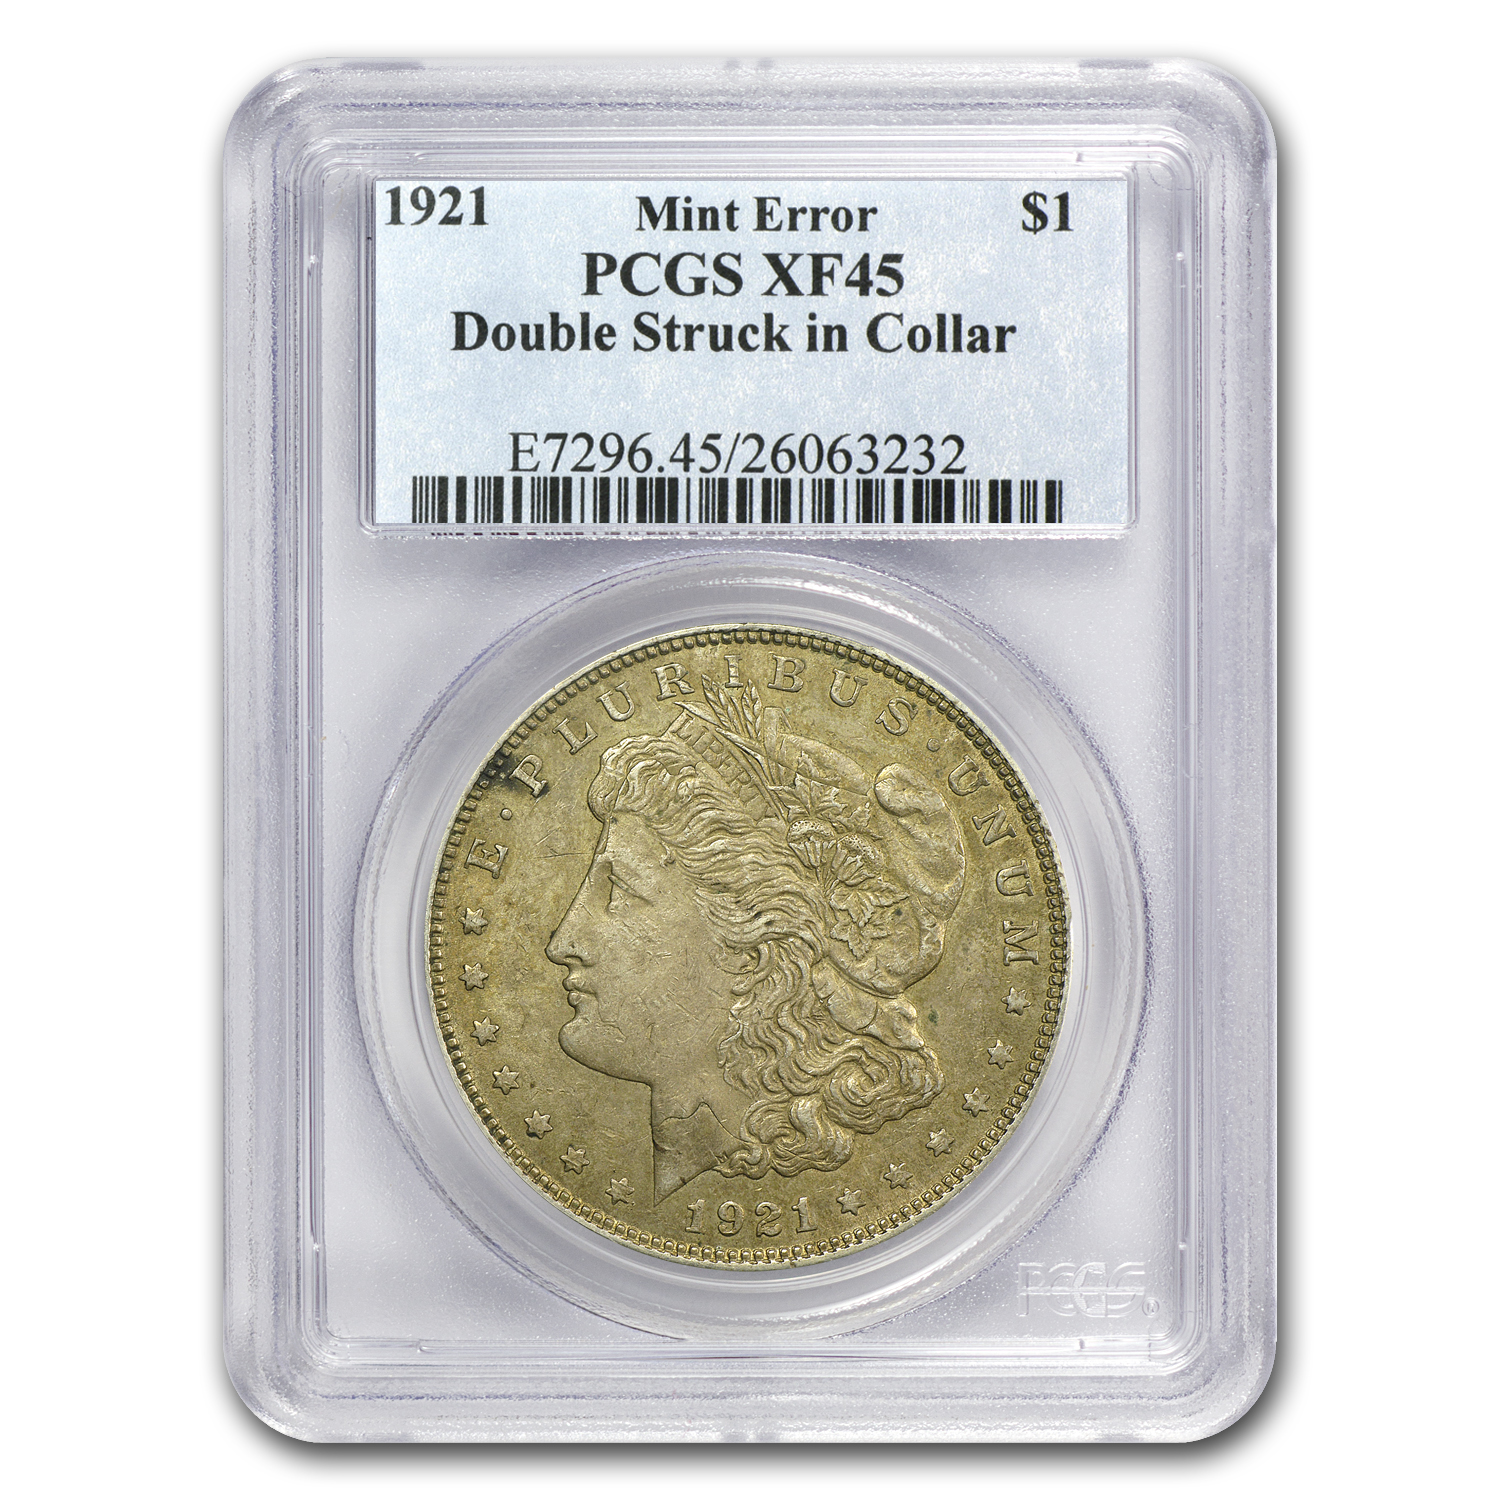 1921 Morgan Dollar - XF-45 PCGS - Double Struck Mint Error